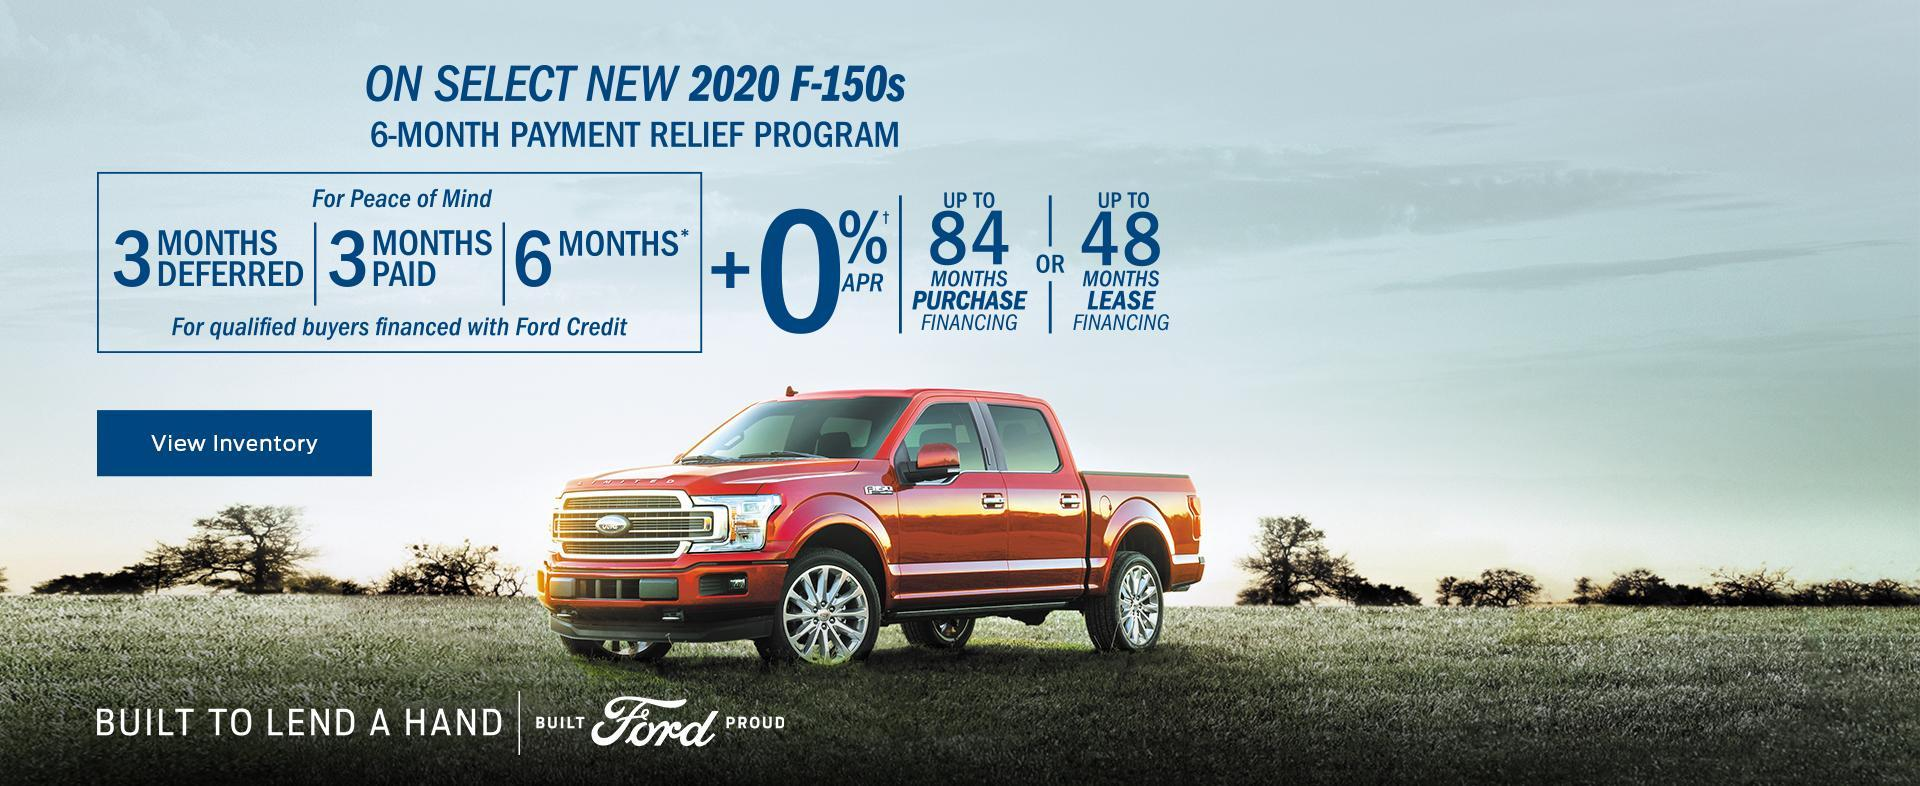 2020 Ford F-150 Built to Lend a Hand